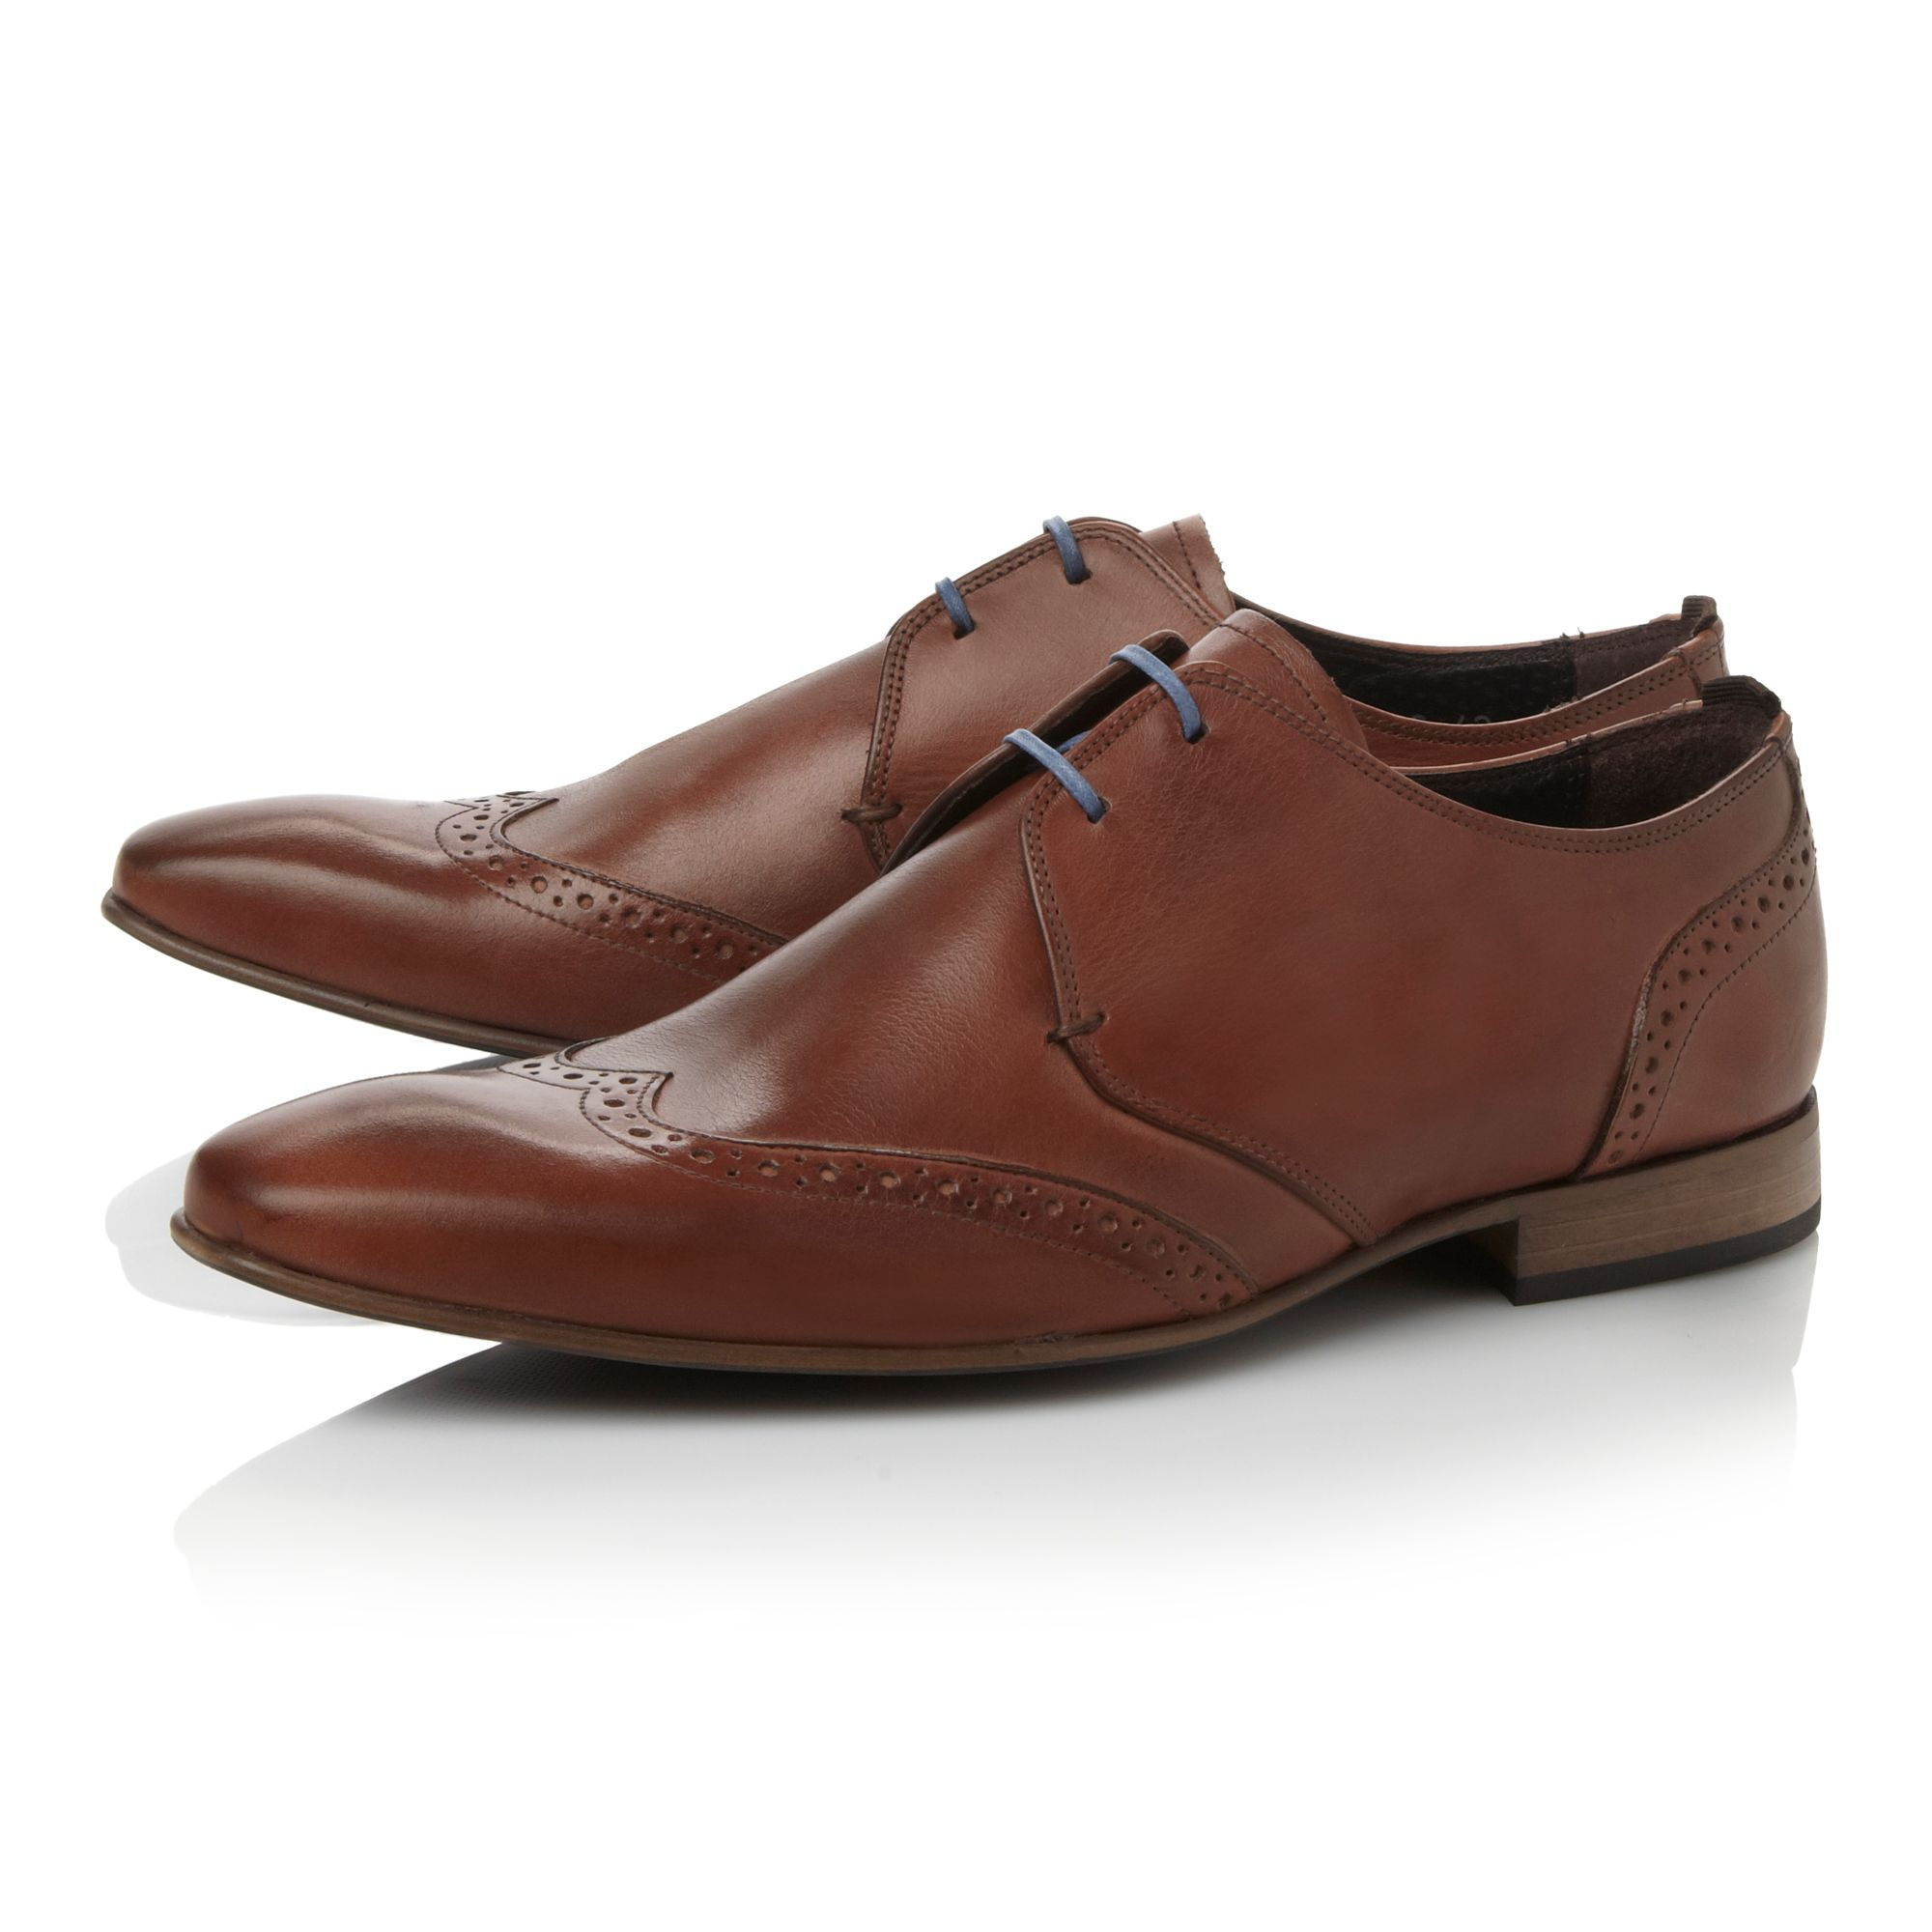 Ashdown wingtip shoe